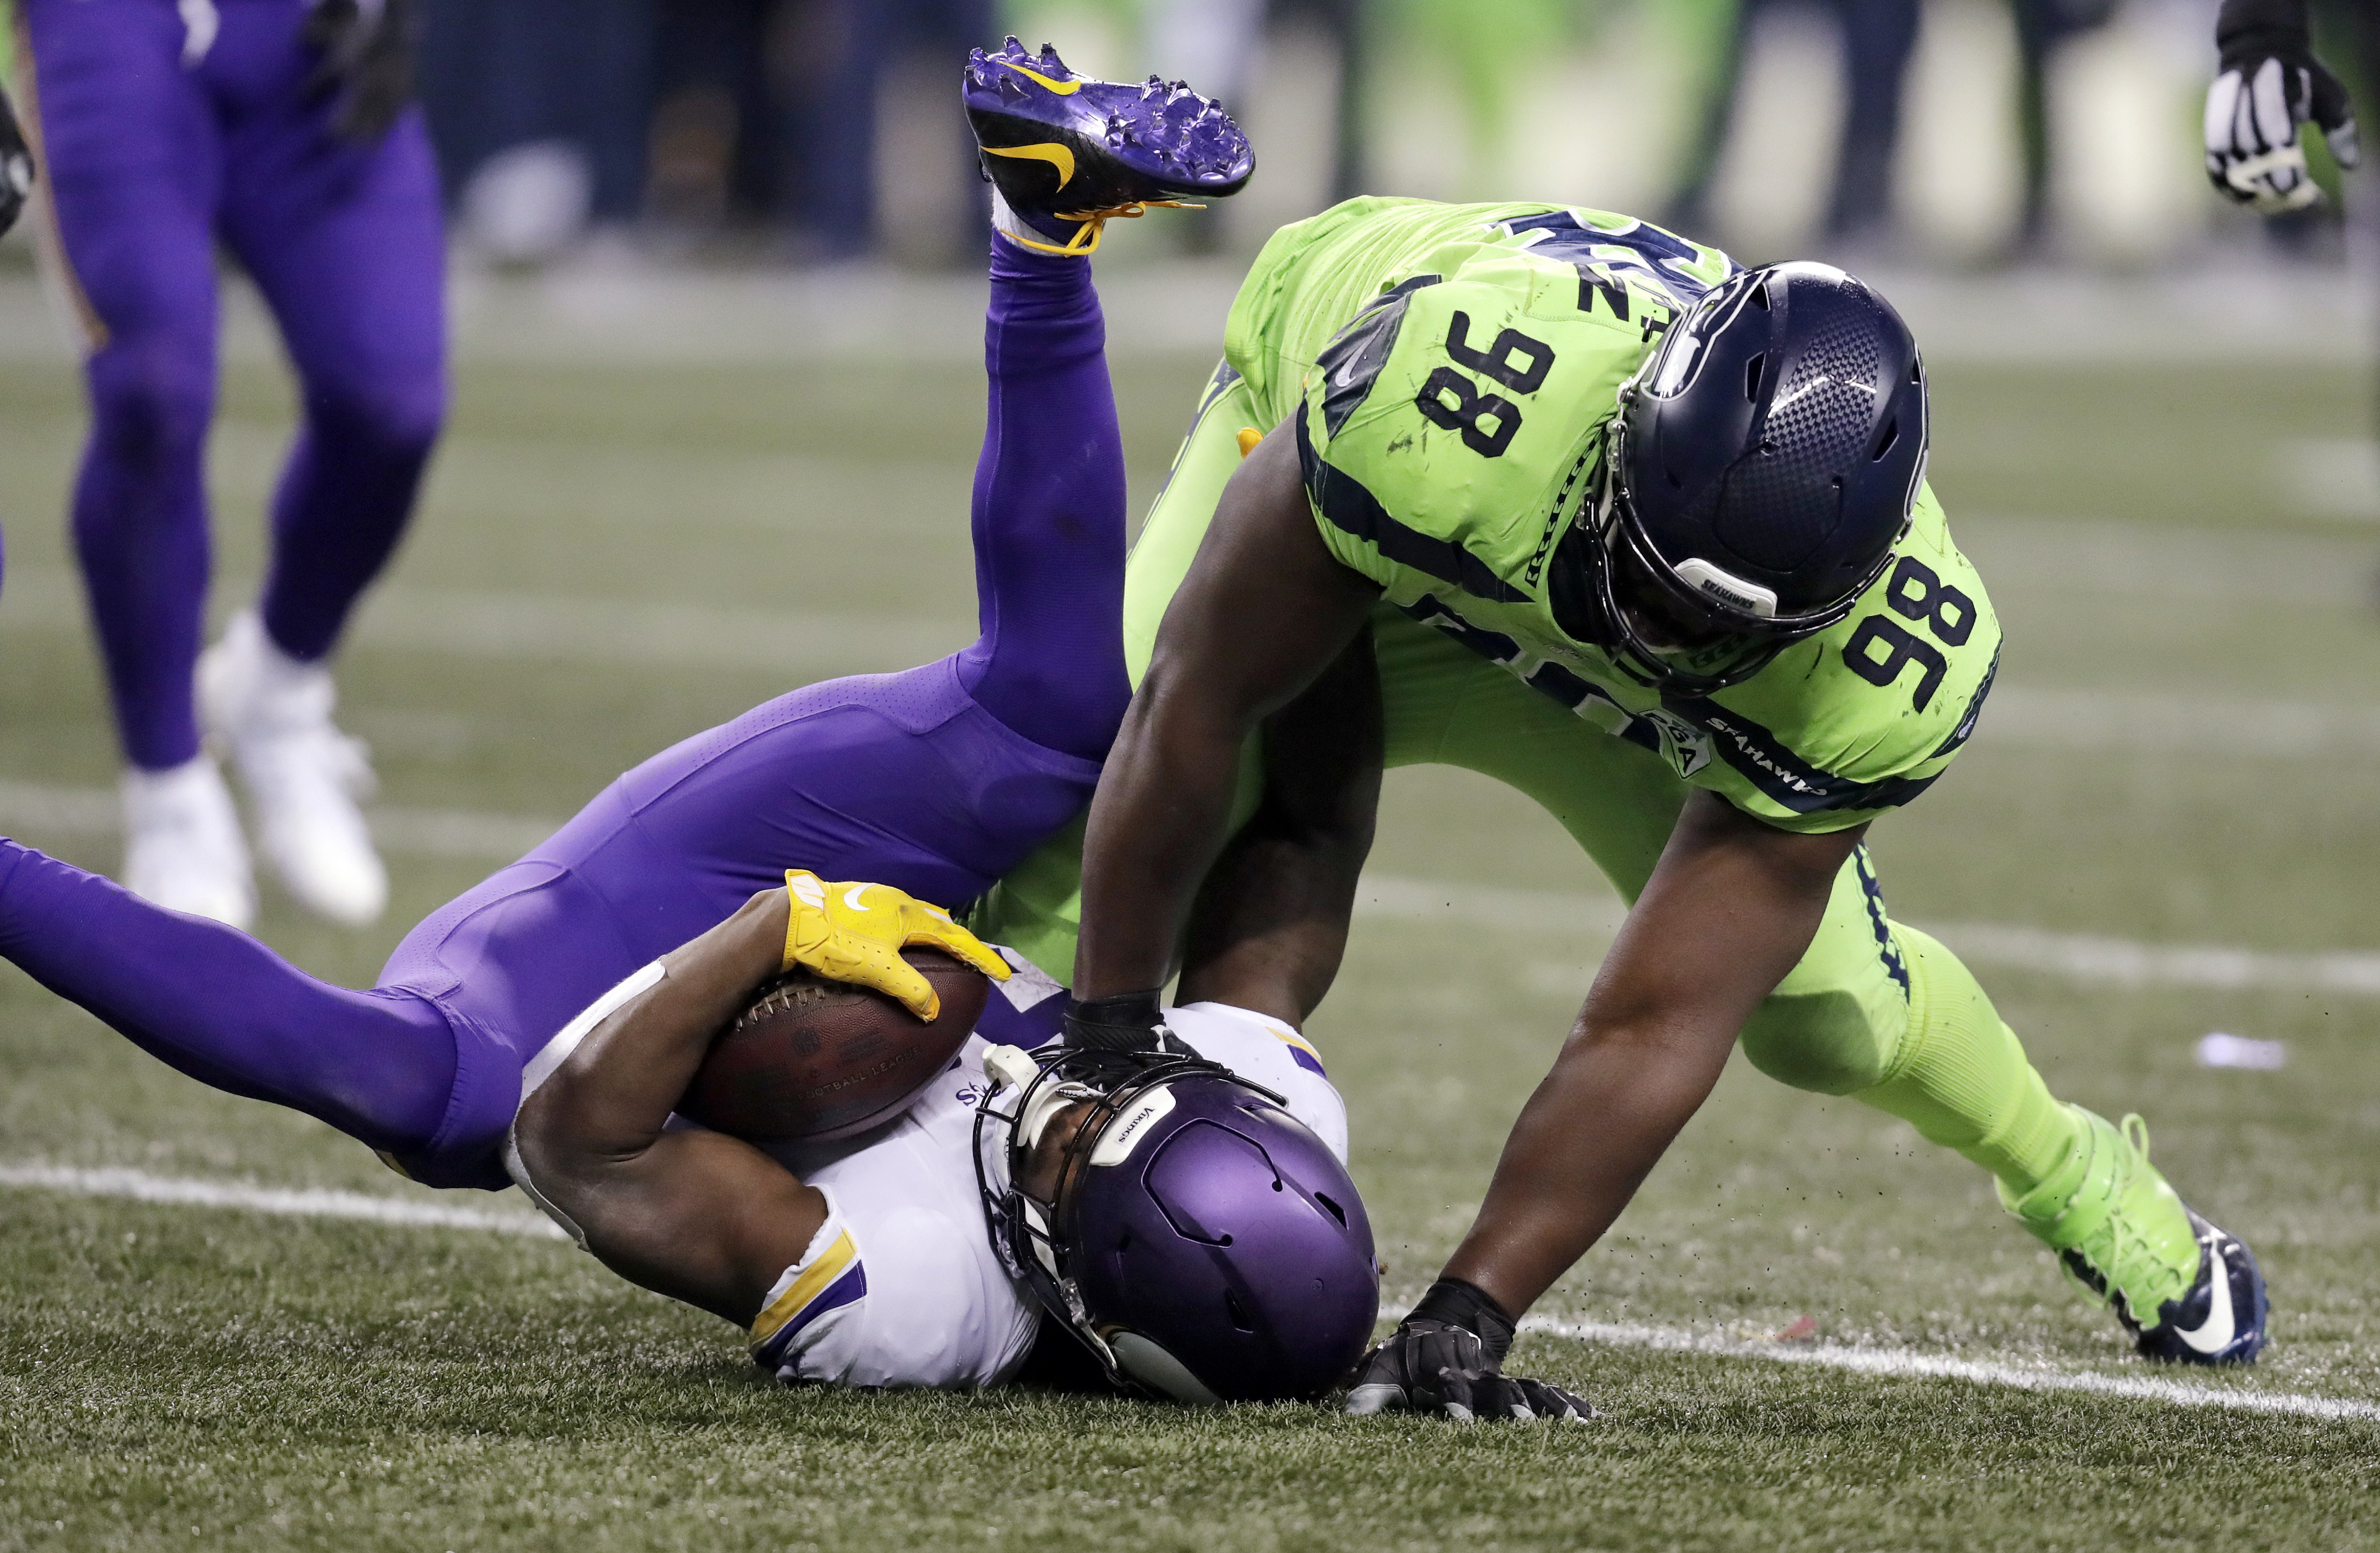 Seahawks beat Vikings with a little offense, some special teams and a lot of defense